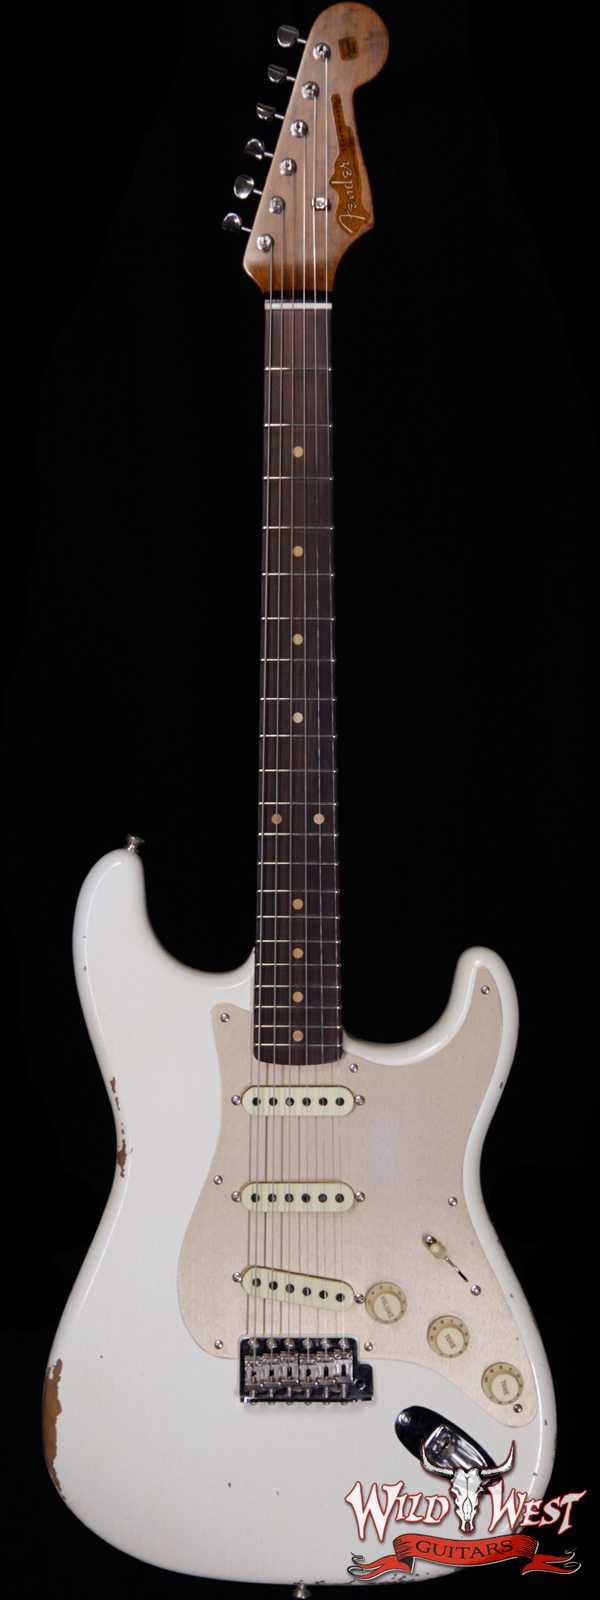 Fender Custom Shop Roasted 1960 Stratocaster Relic 3A Birdseye Maple Neck 3A Rosewood Board Aged Olympic White